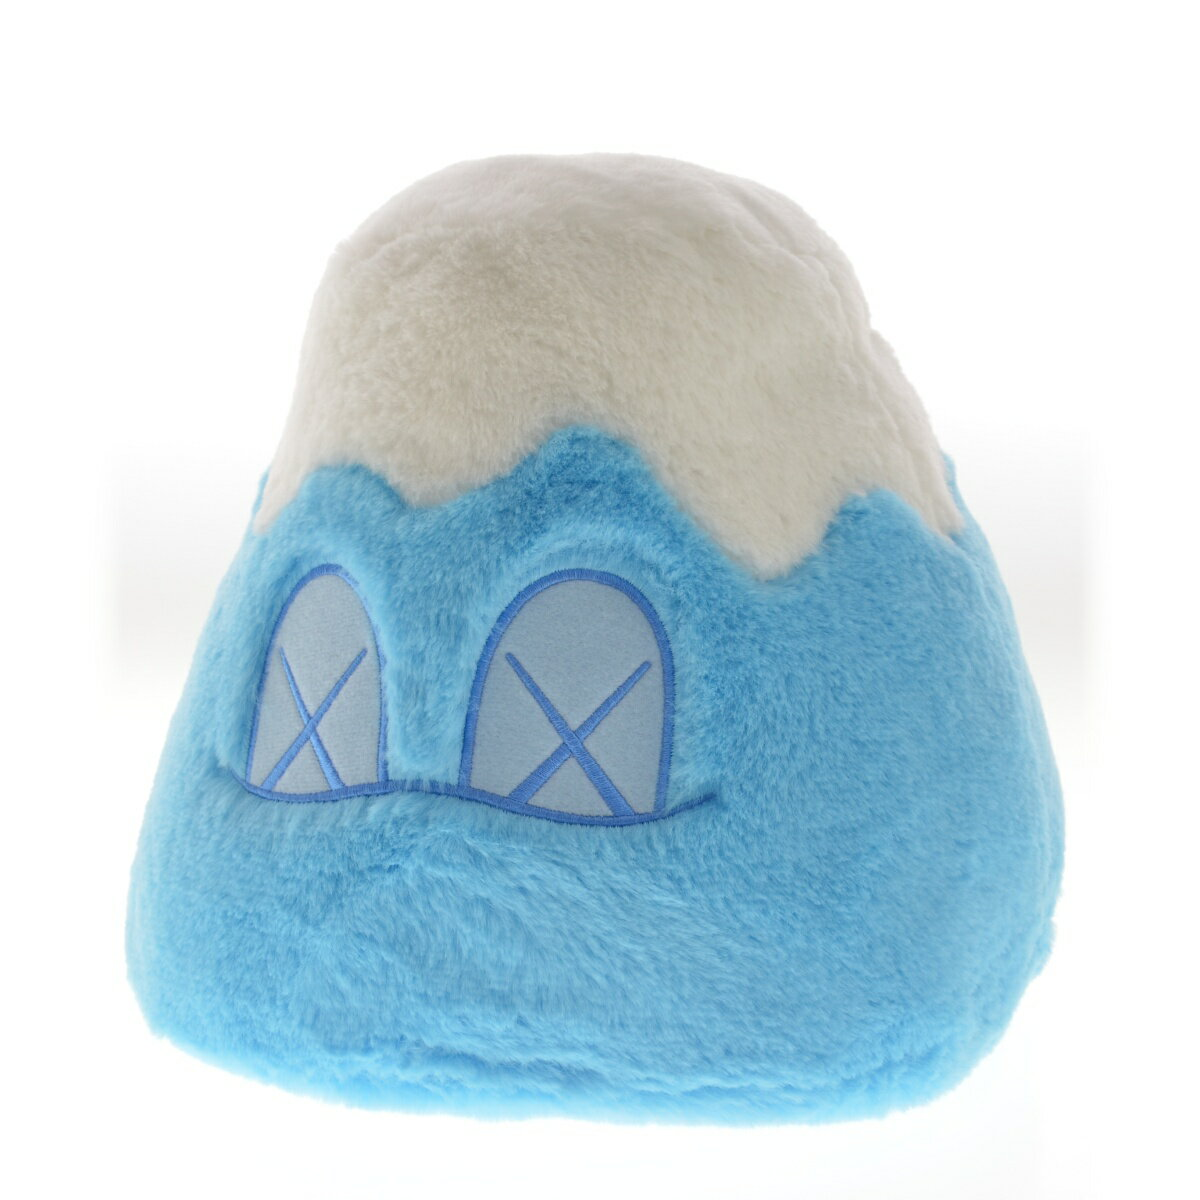 バッグ・小物・ブランド雑貨, その他 KAWS 19SS KAWS HOLIDAY JAPAN Mount Fuji Plush 8 cabjajba-z